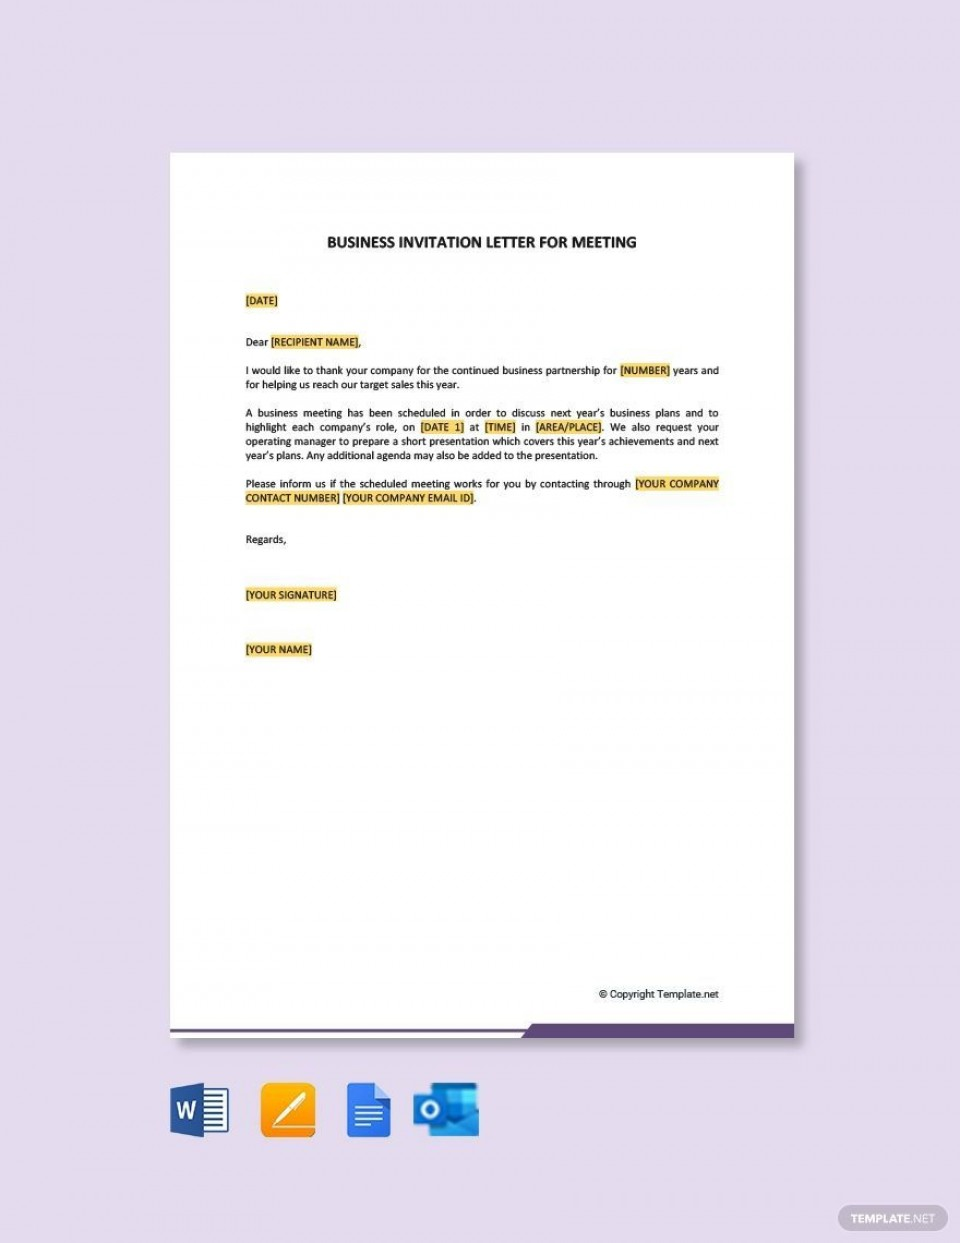 005 Exceptional Free Busines Invitation Template For Word High Def 960